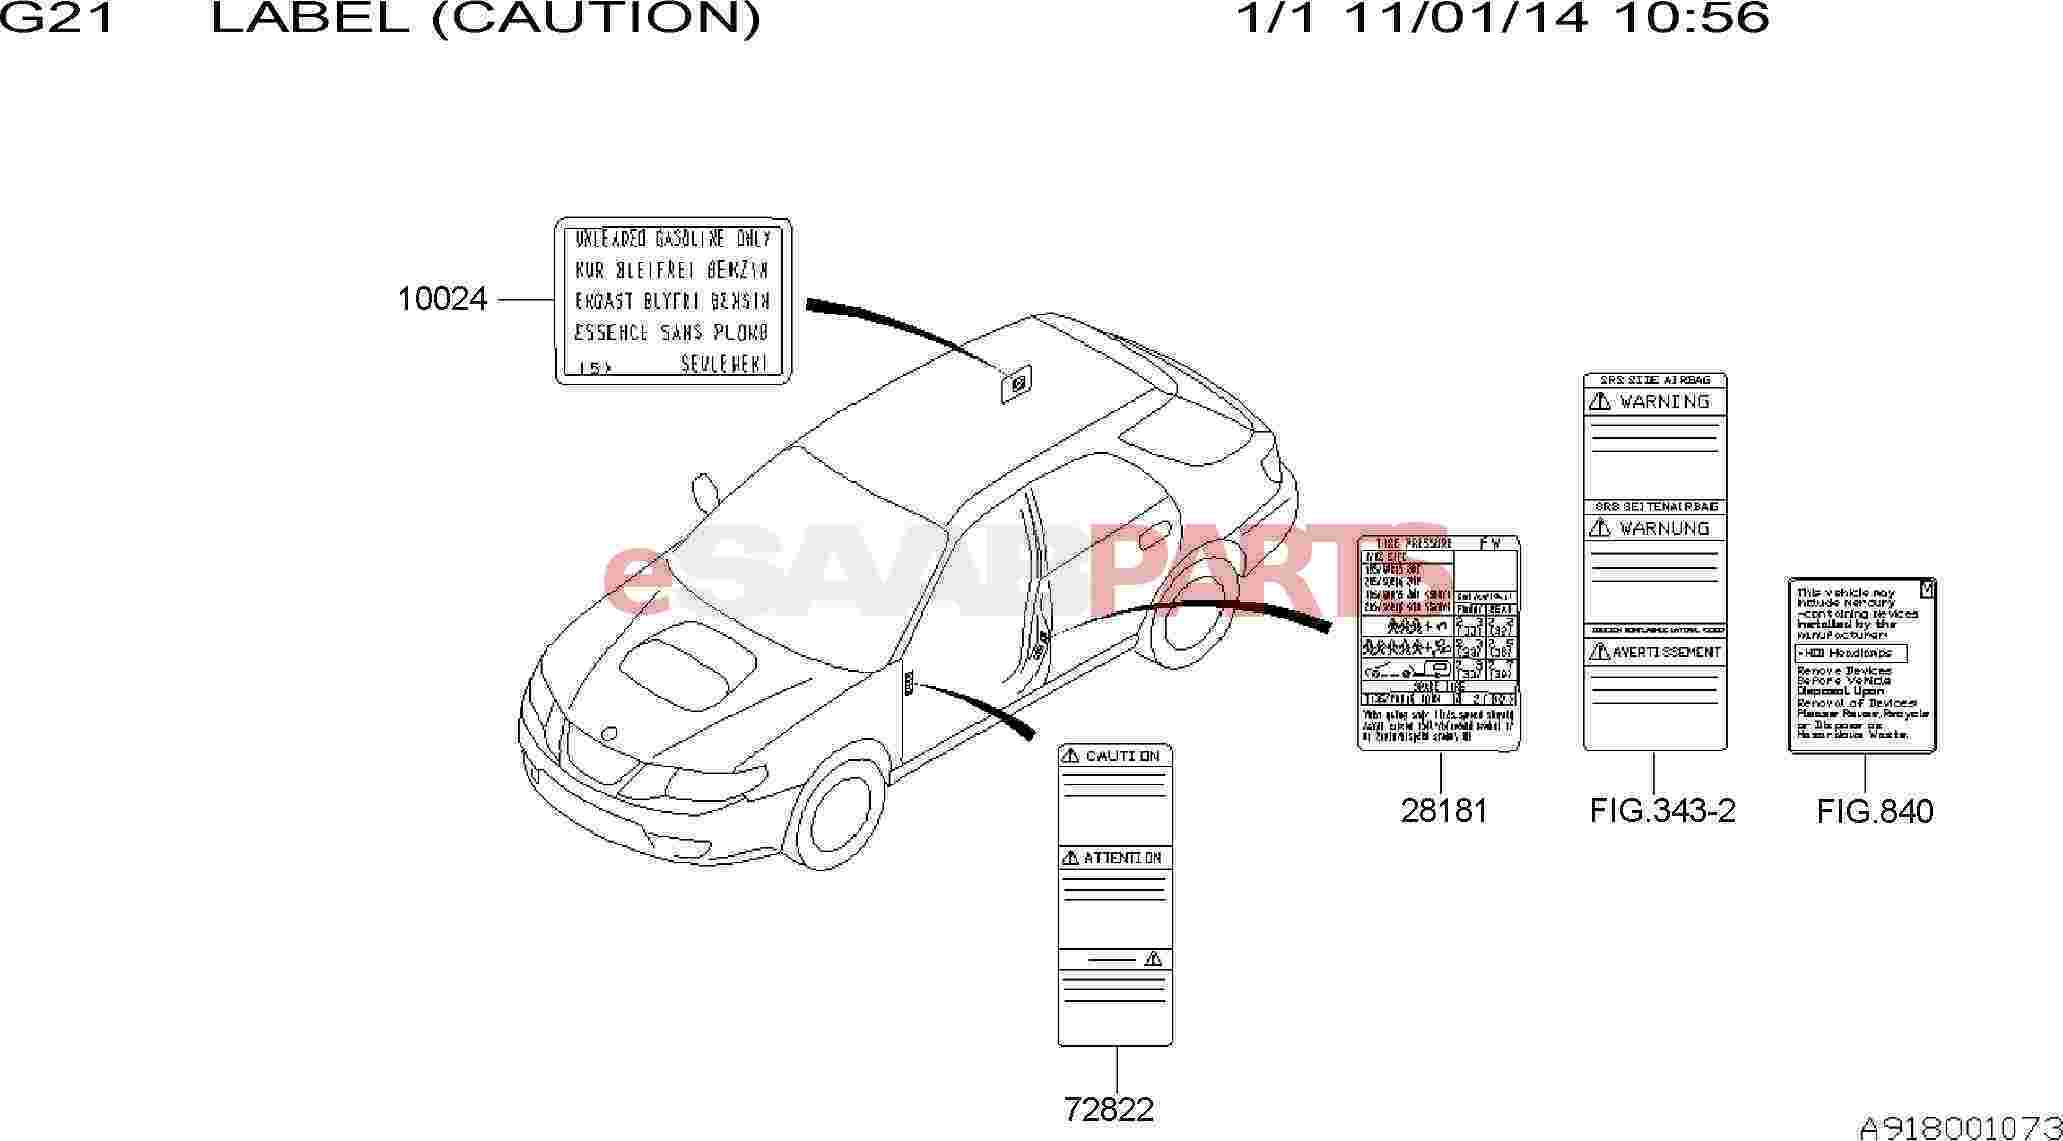 2003 Saab 93 Fuse Box Diagram Free Download Wiring Auto Electrical Related With